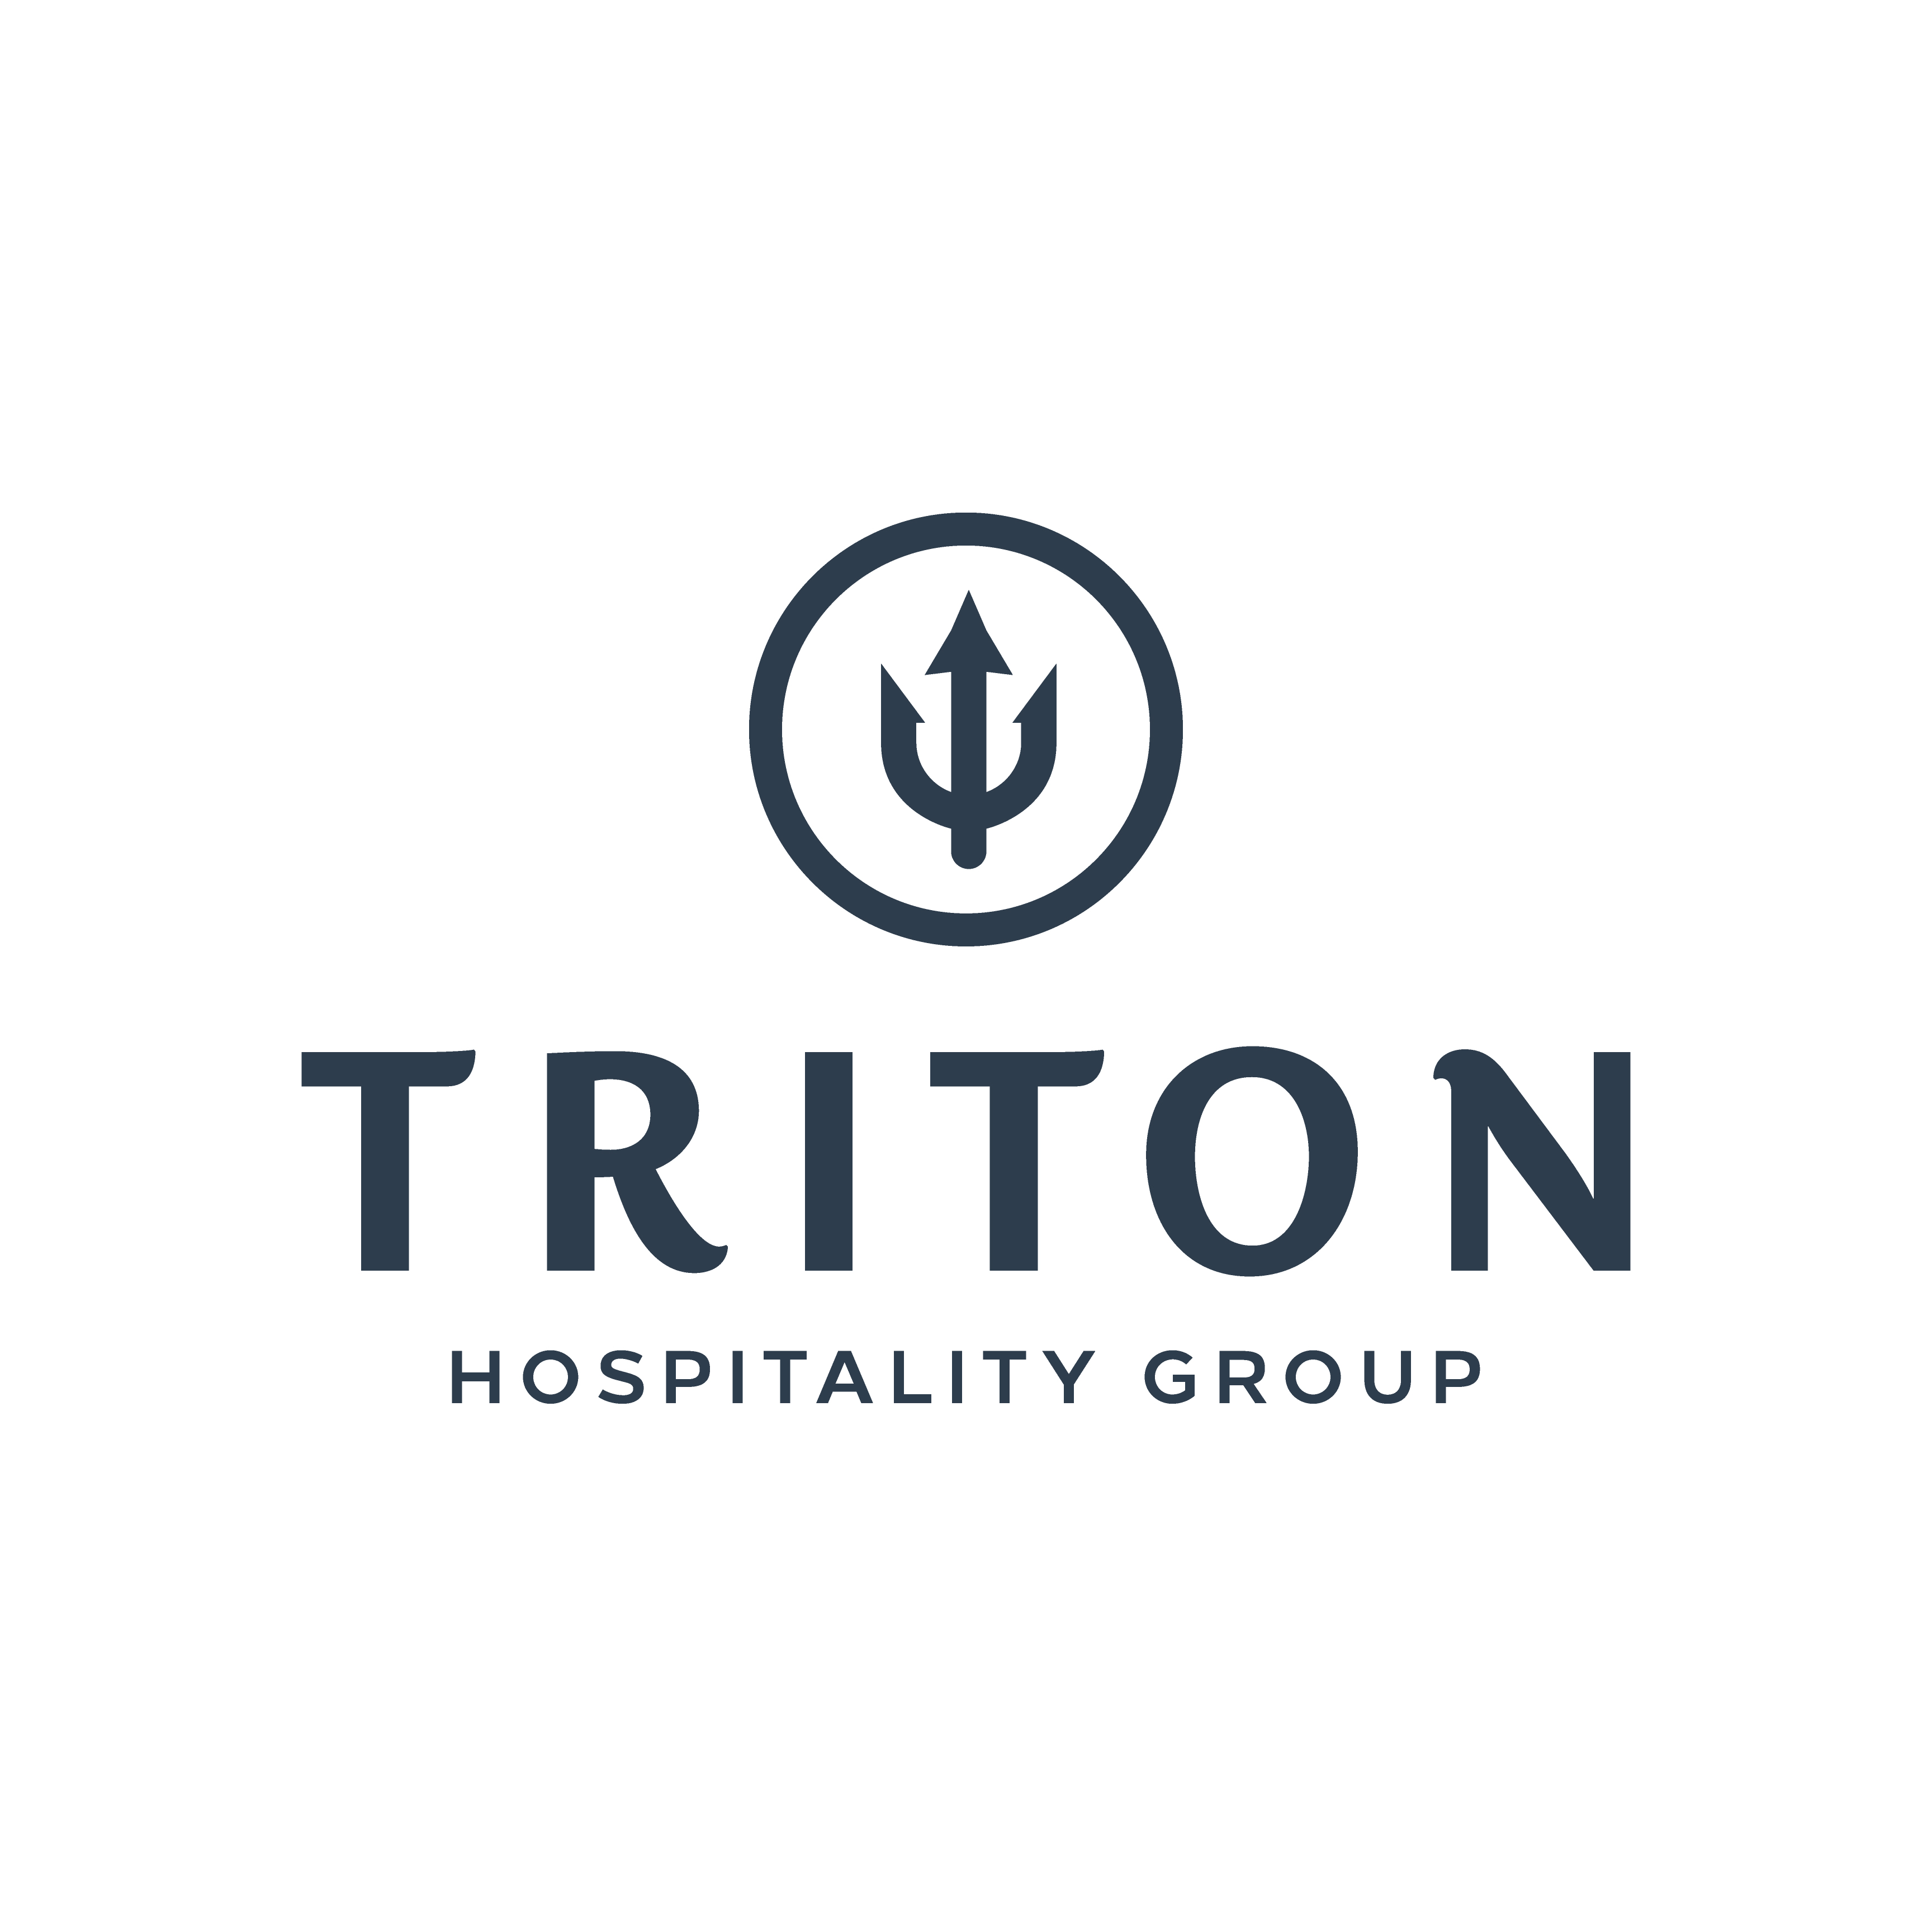 Industry Veterans John Murphy And David Parsky Announce Launch Of Investment Firm Triton Hospitality Group